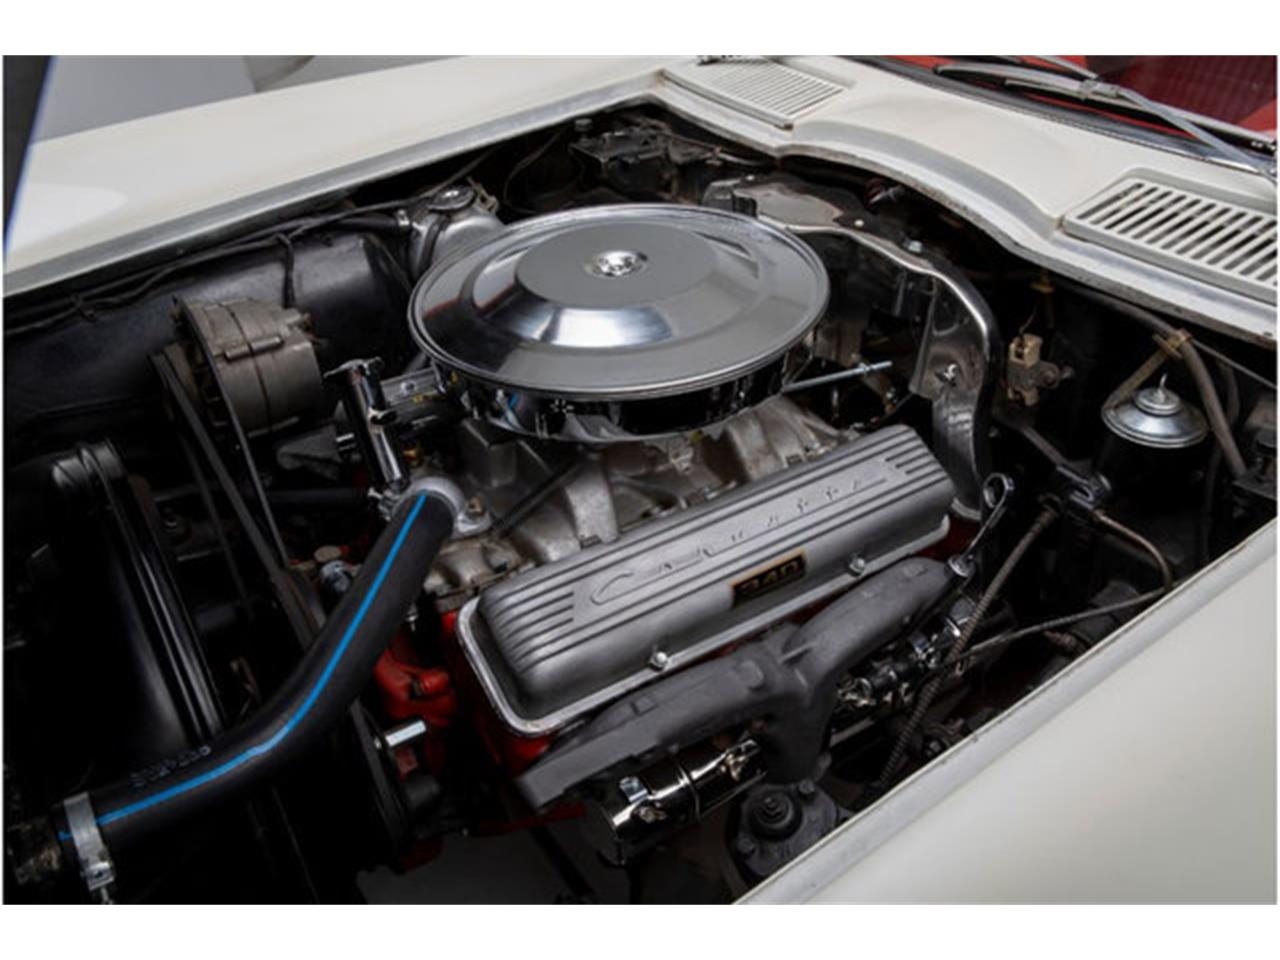 Large Picture of 1963 Corvette located in New York - $139,999.00 Offered by Prestige Motor Car Co. - QOXV